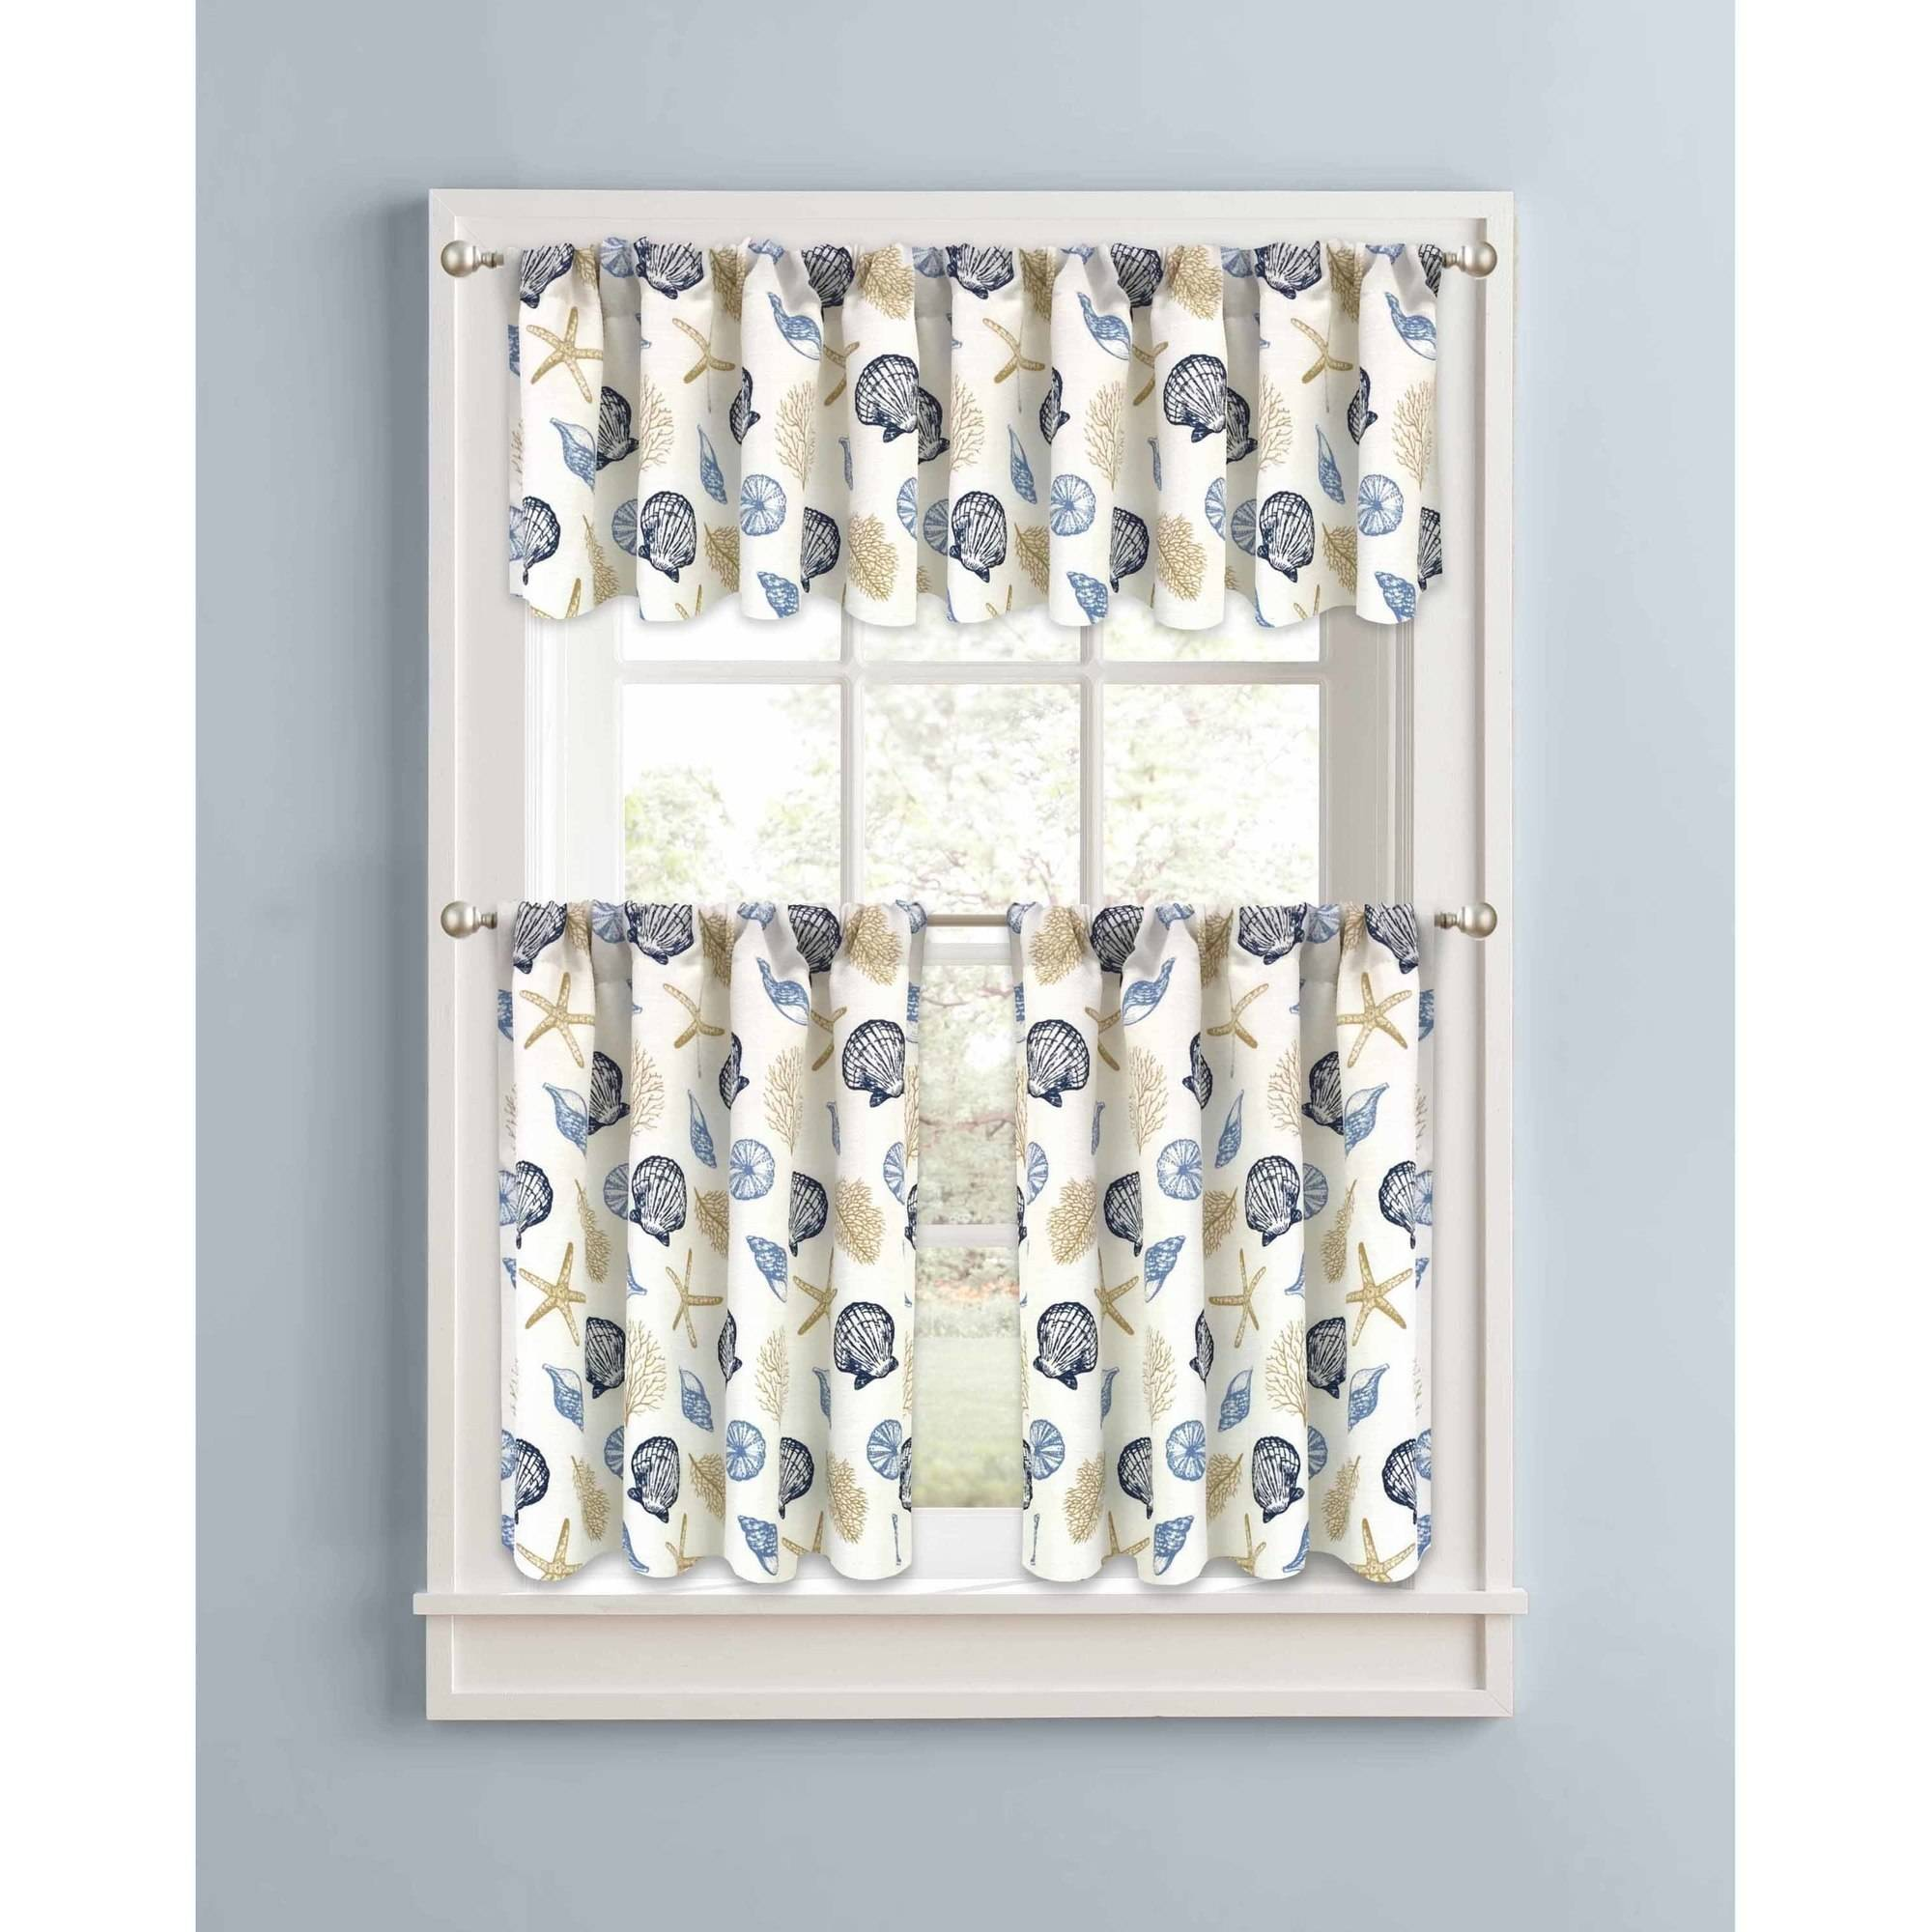 Better Homes and Gardens Blue Seashells Kitchen Curtains, Set of 2 or Valance by Colordrift LLC